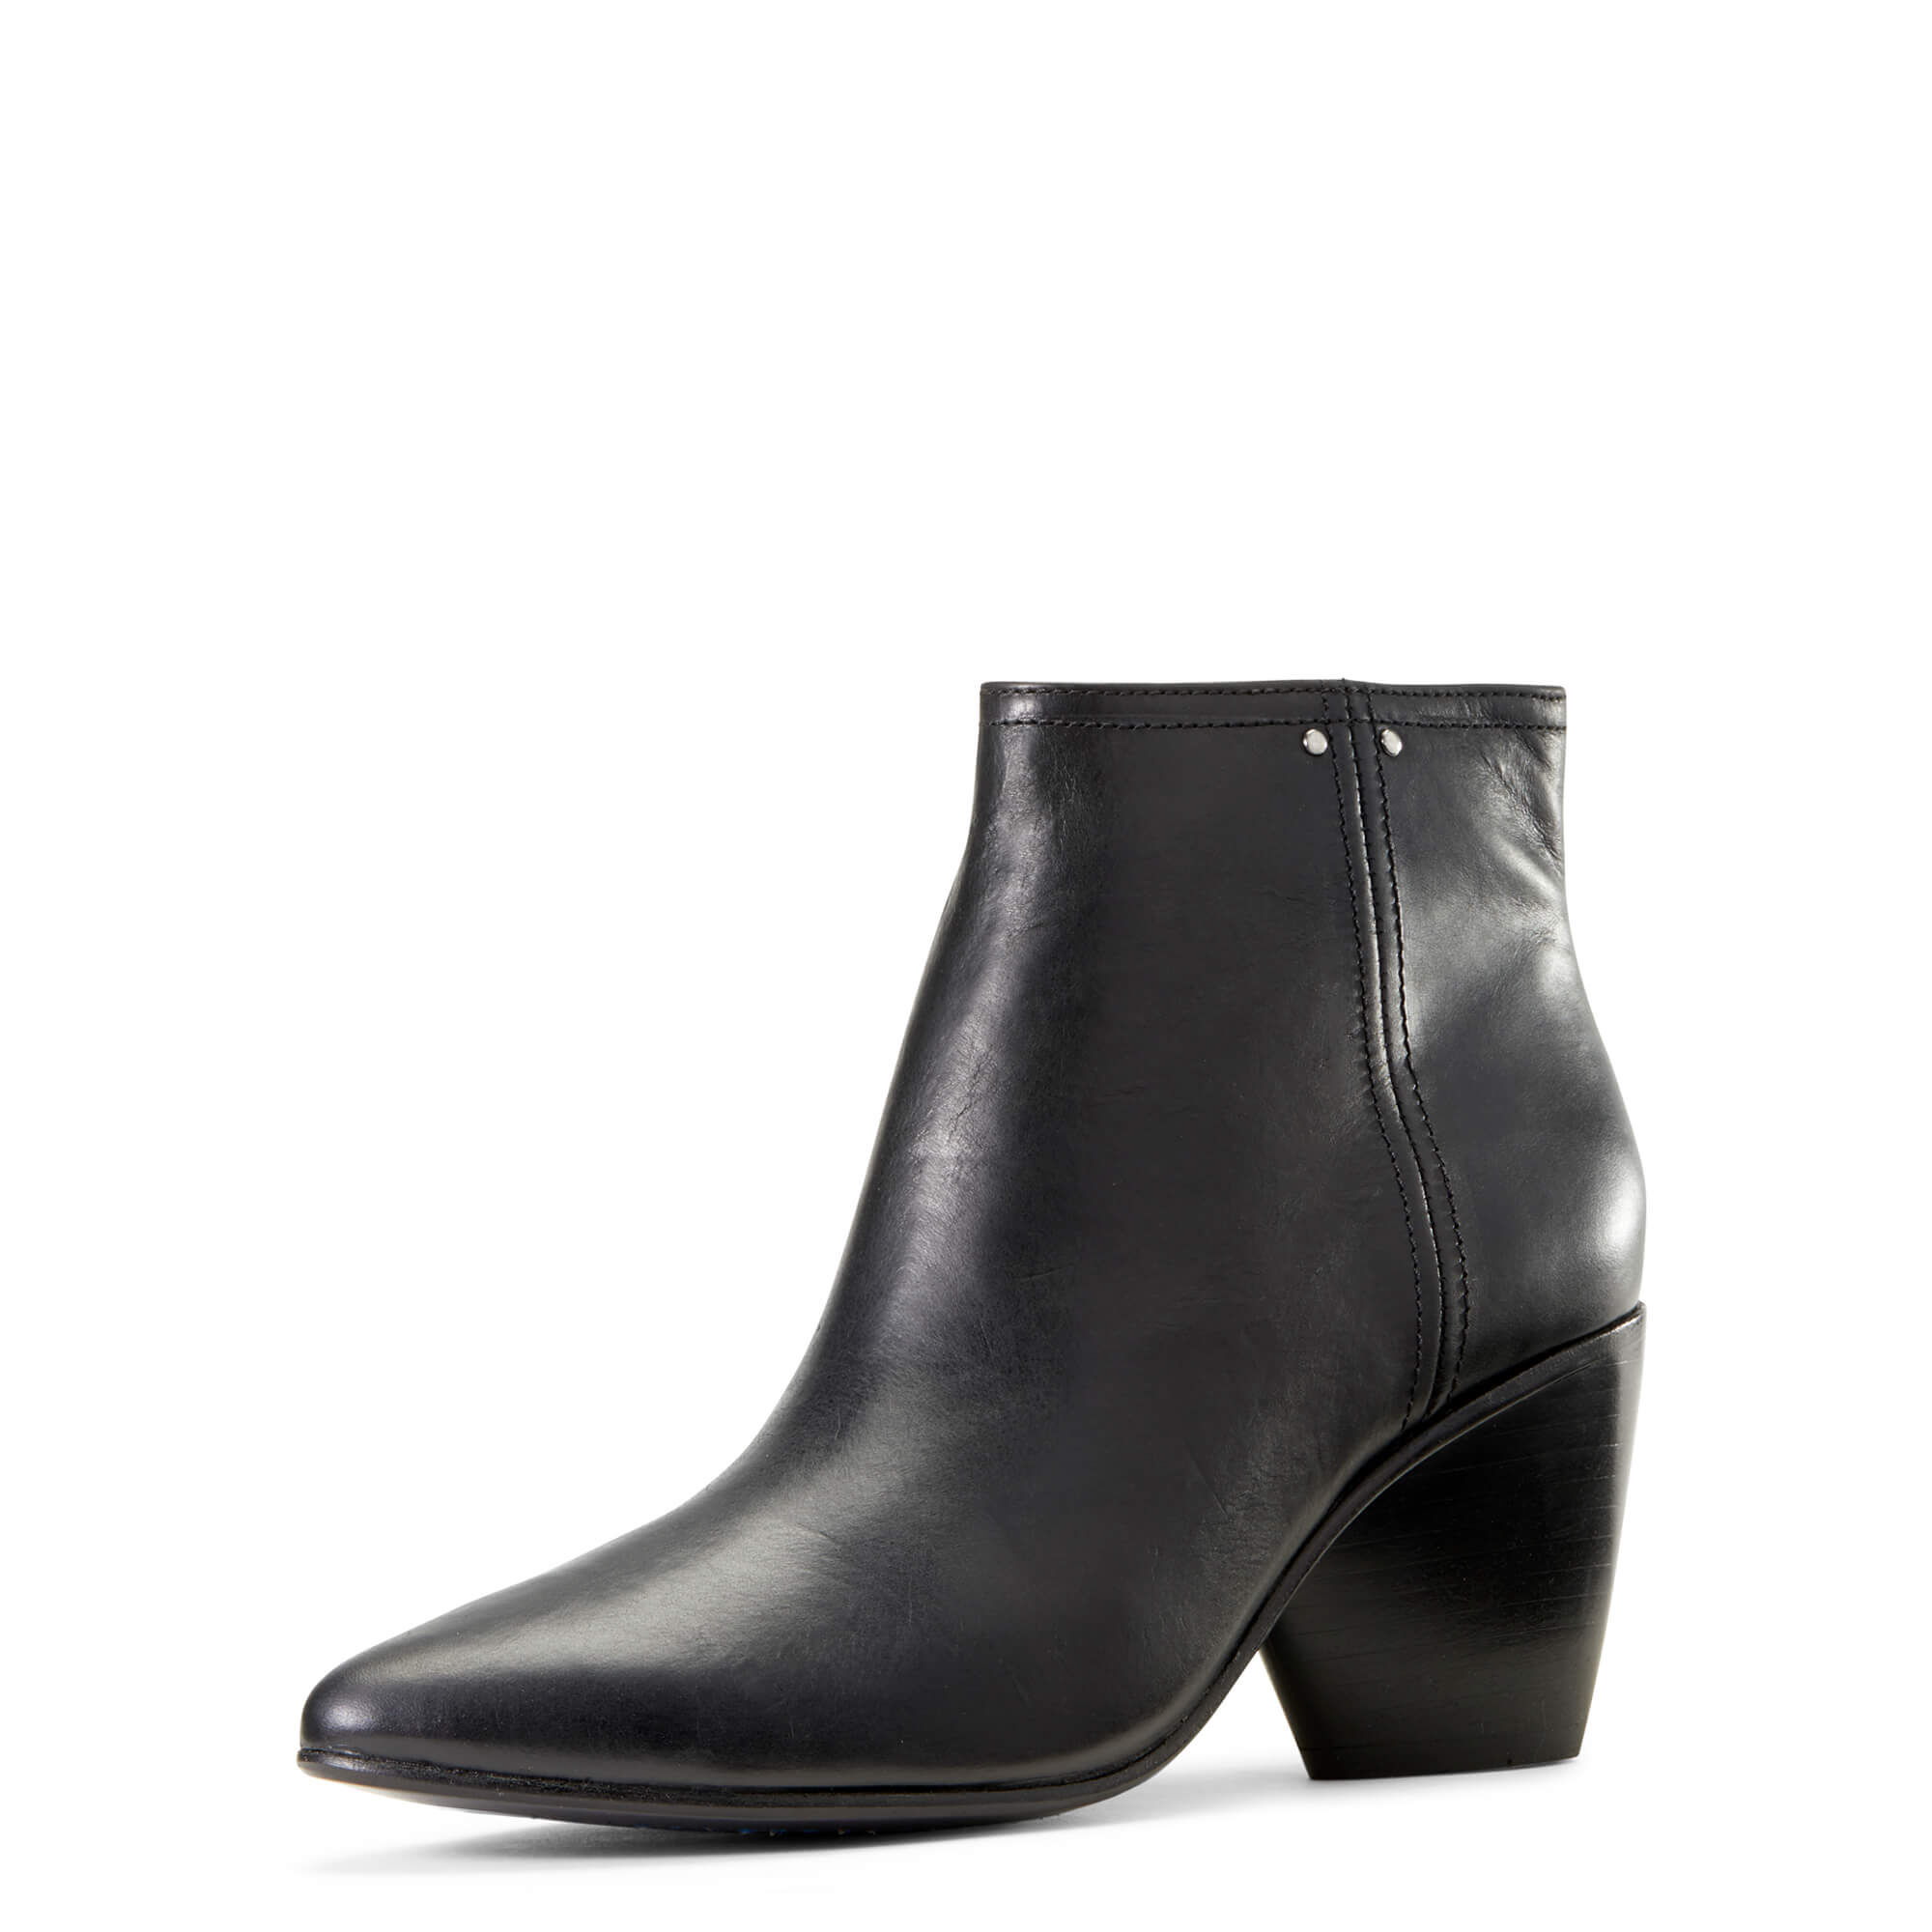 Women's Laney Boots in Black Leather by Ariat Two24